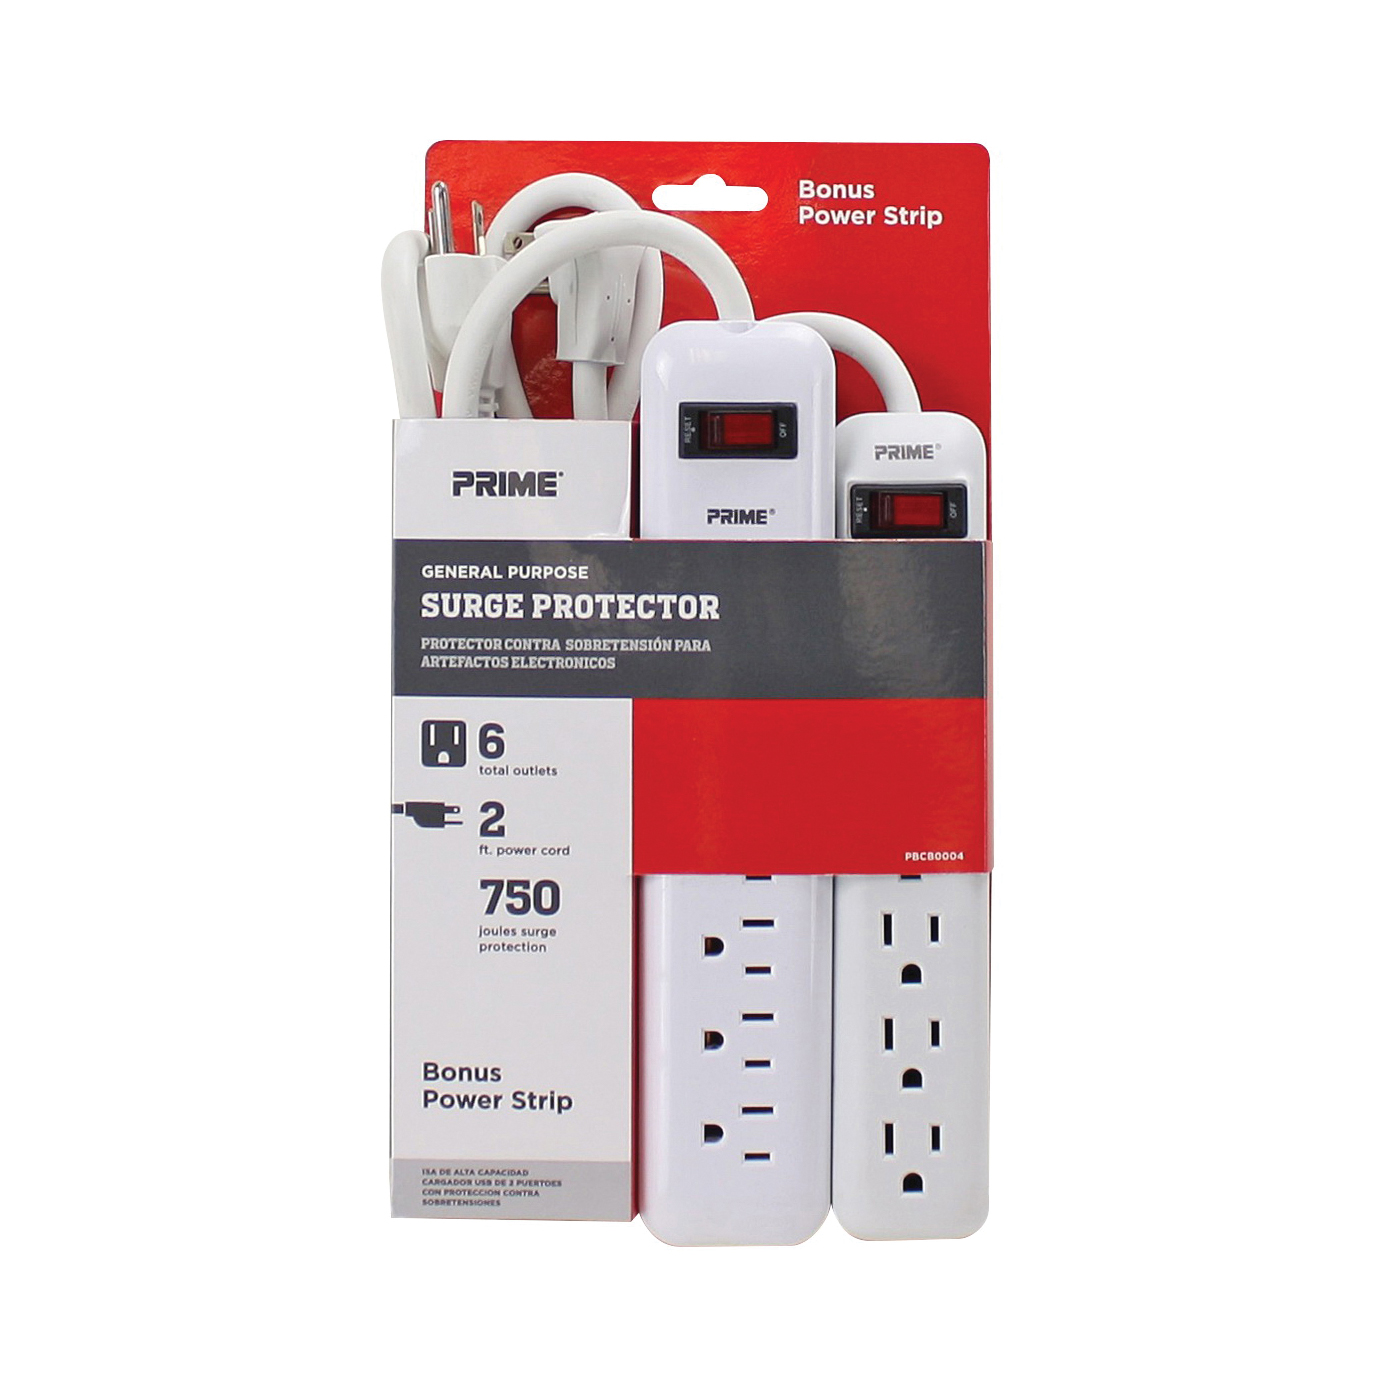 Picture of Prime PBCB0004 General-Purpose Surge Protector, 125 V, 15 A, 6-Outlet, 750 J Energy, <1 ns Response, White